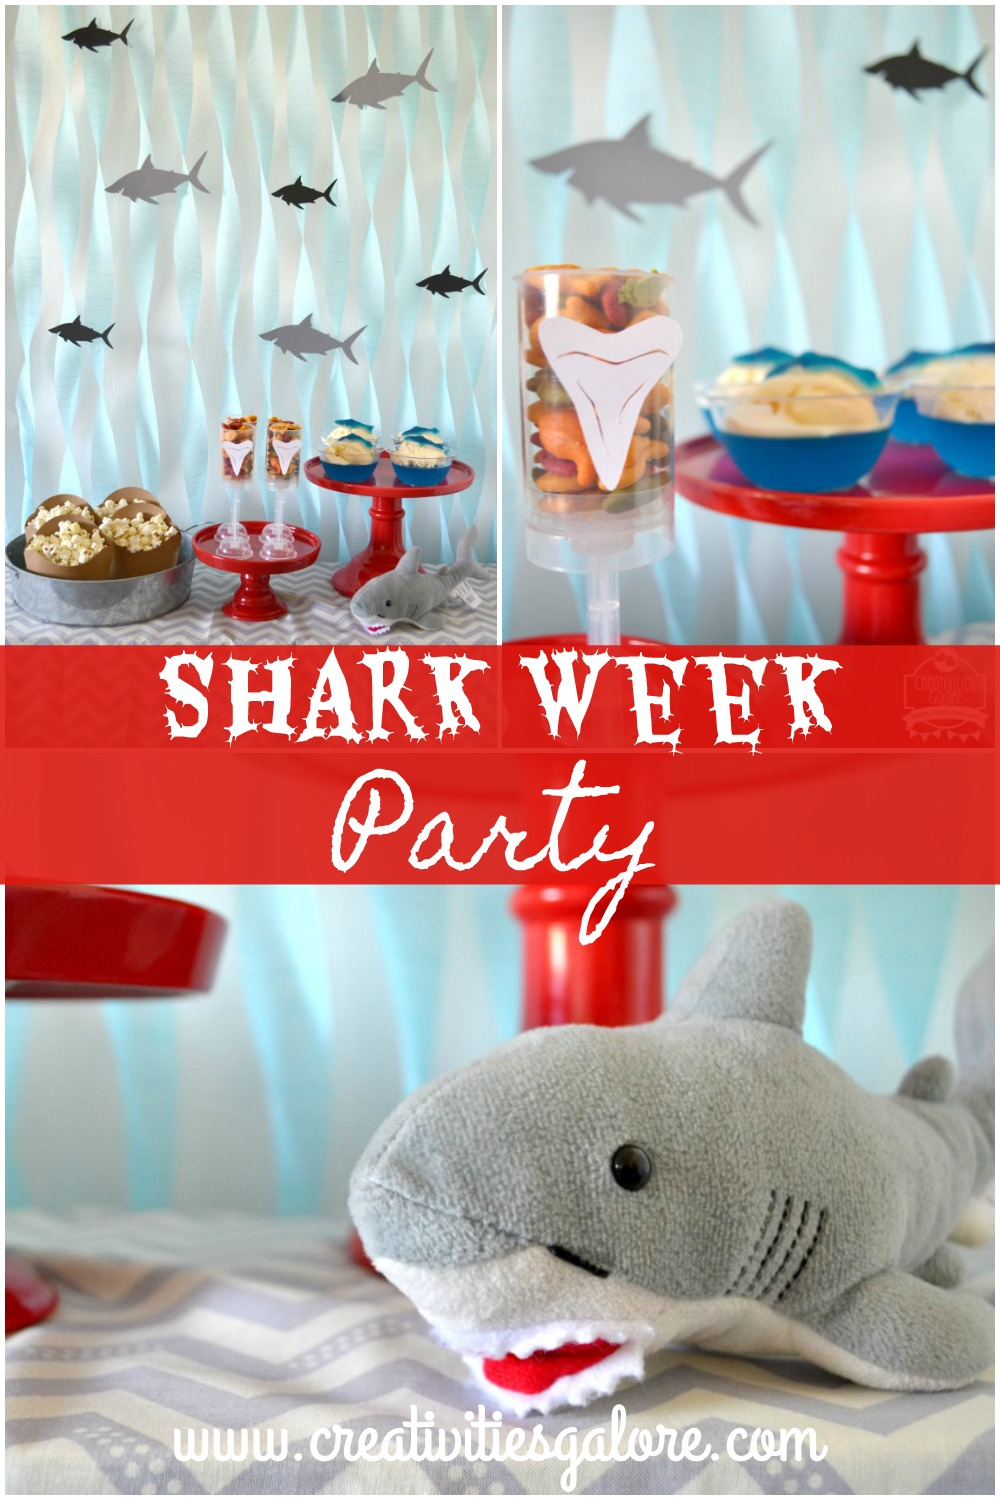 Easy and simple shark week party ideas by Creativities Galore